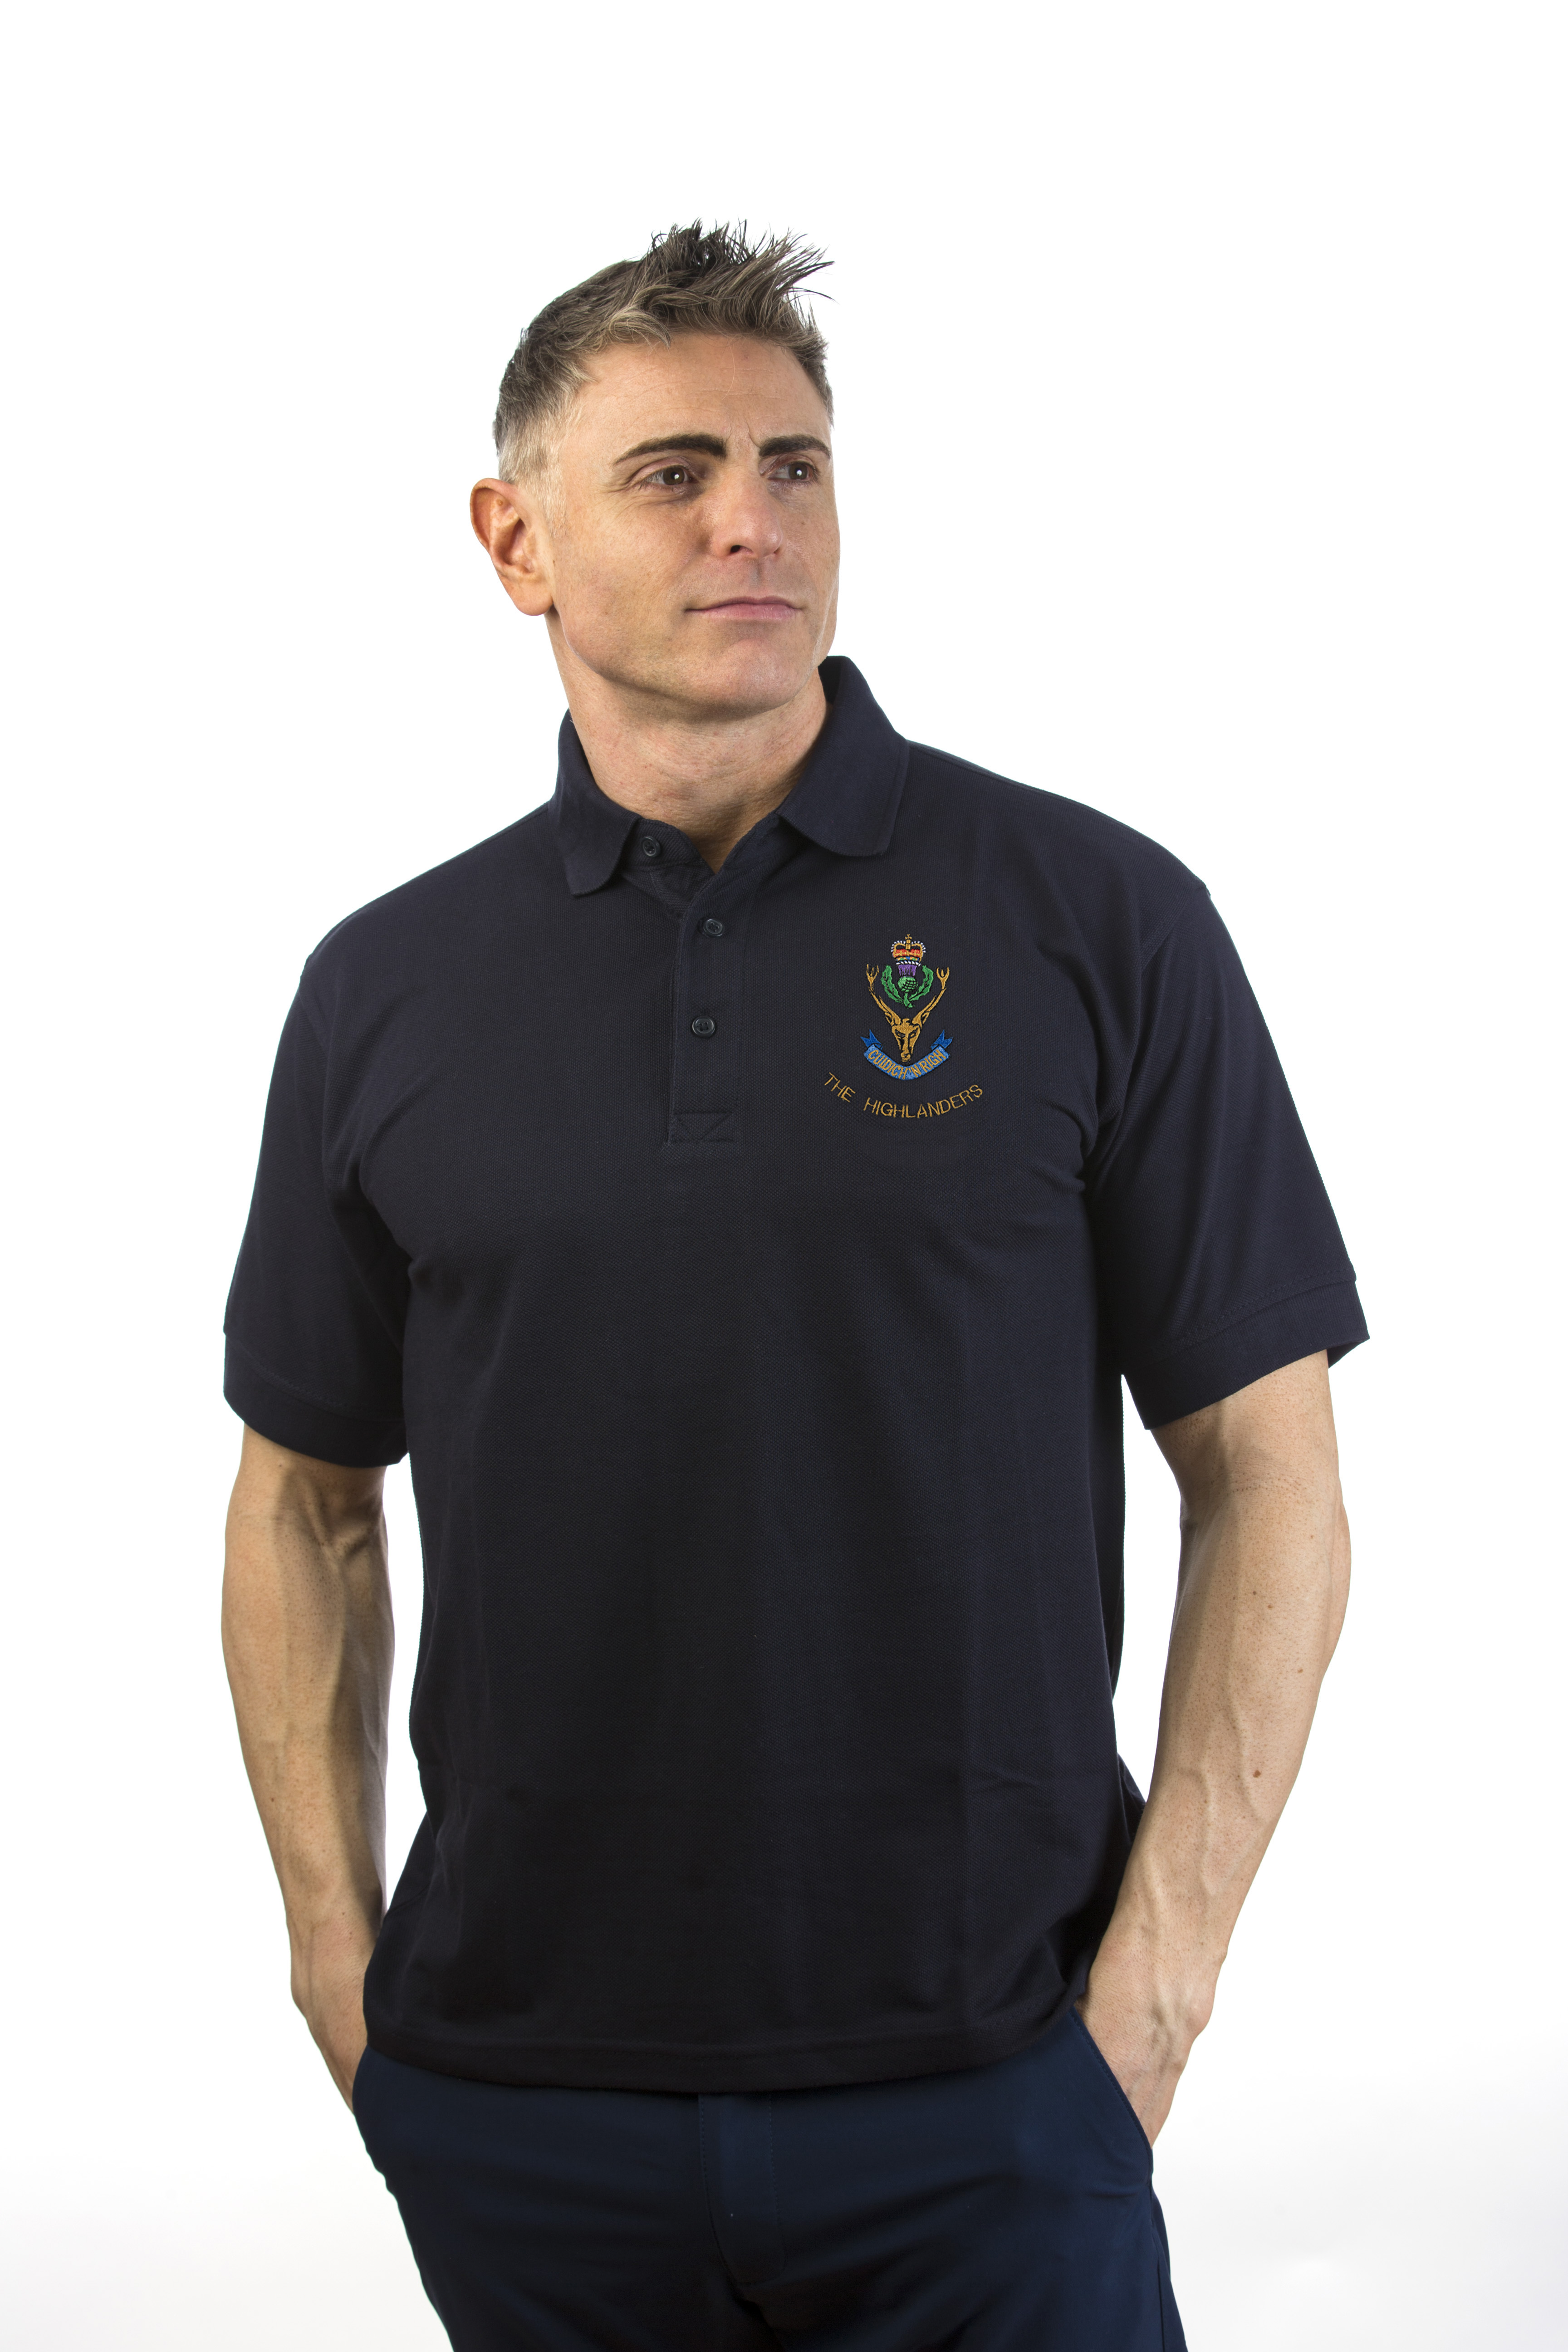 The Highlanders Polo Shirt